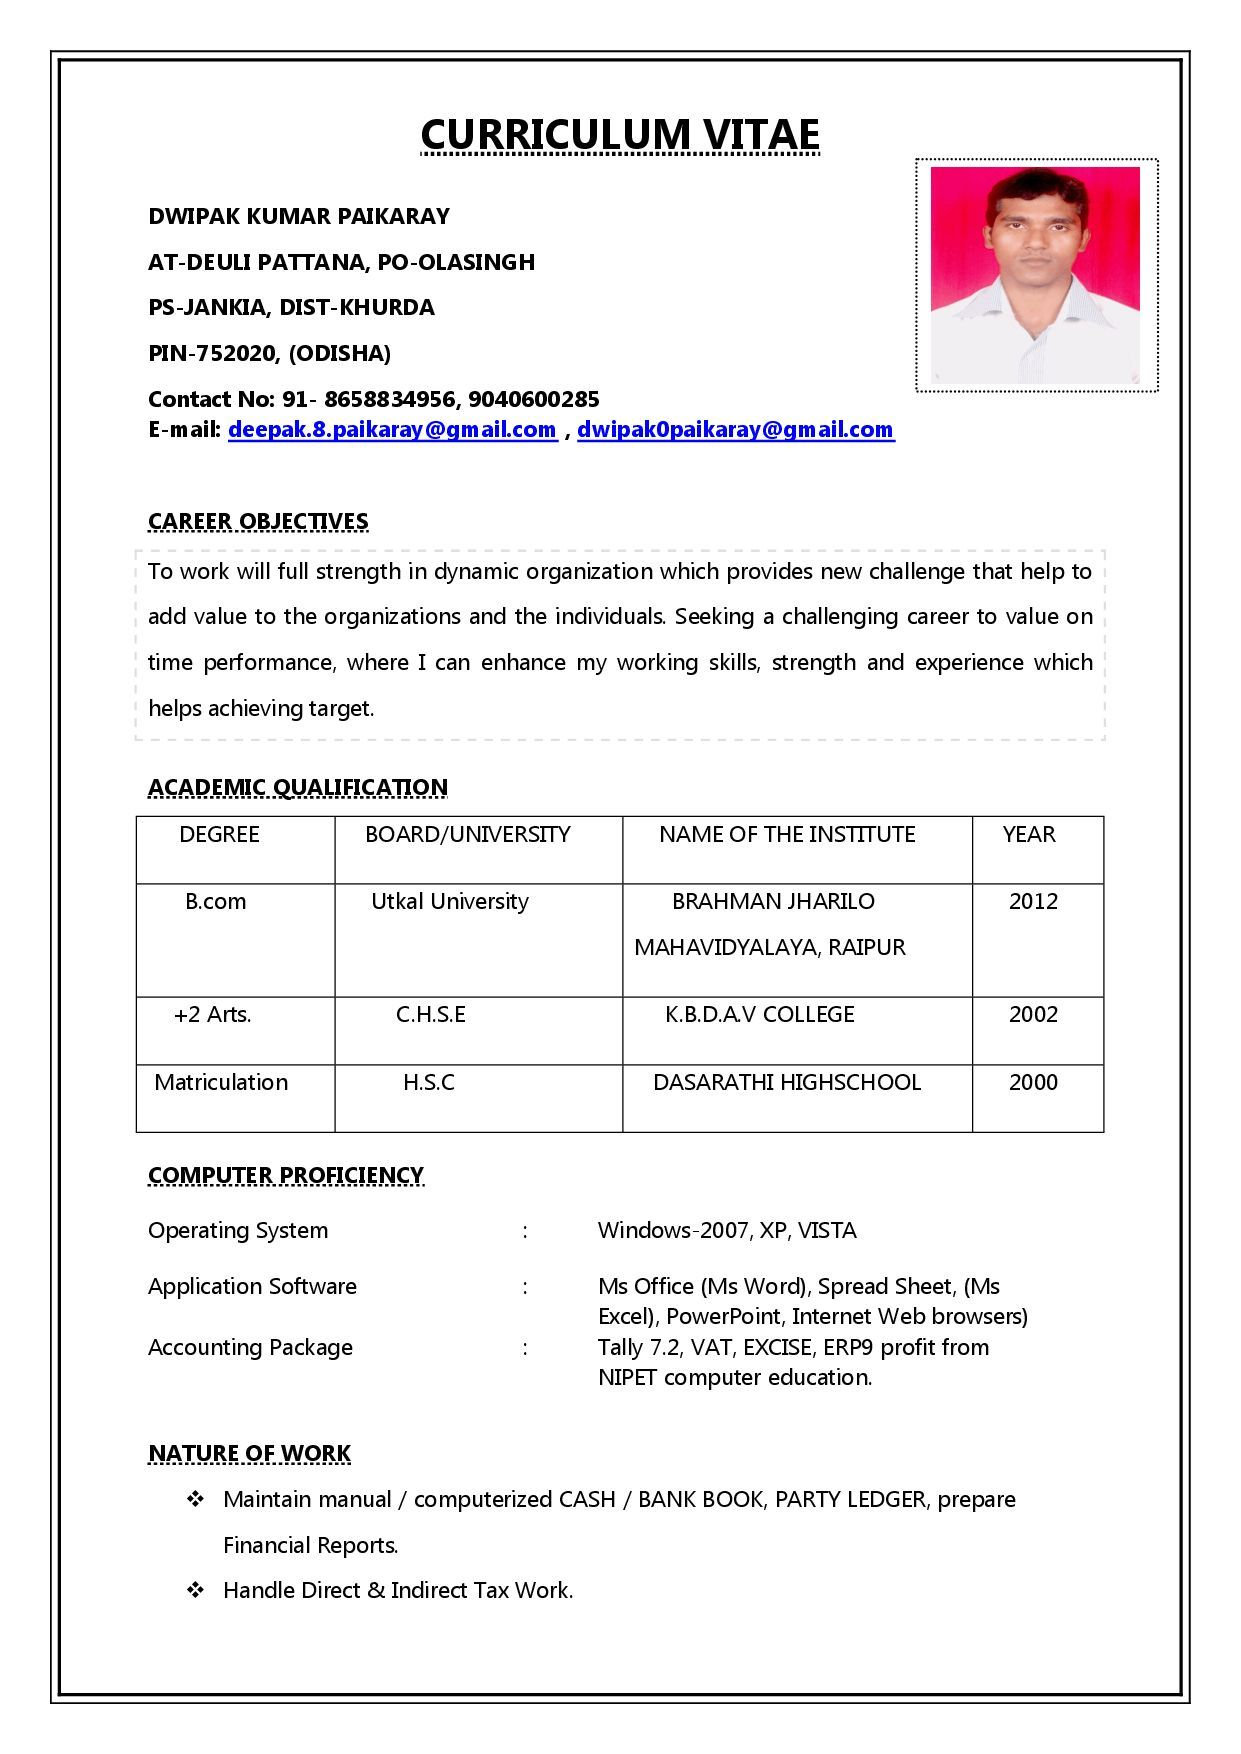 Resume Format Job Interview Format Interview Resume Resumeformat Job Resume Format Job Resume Job Resume Template